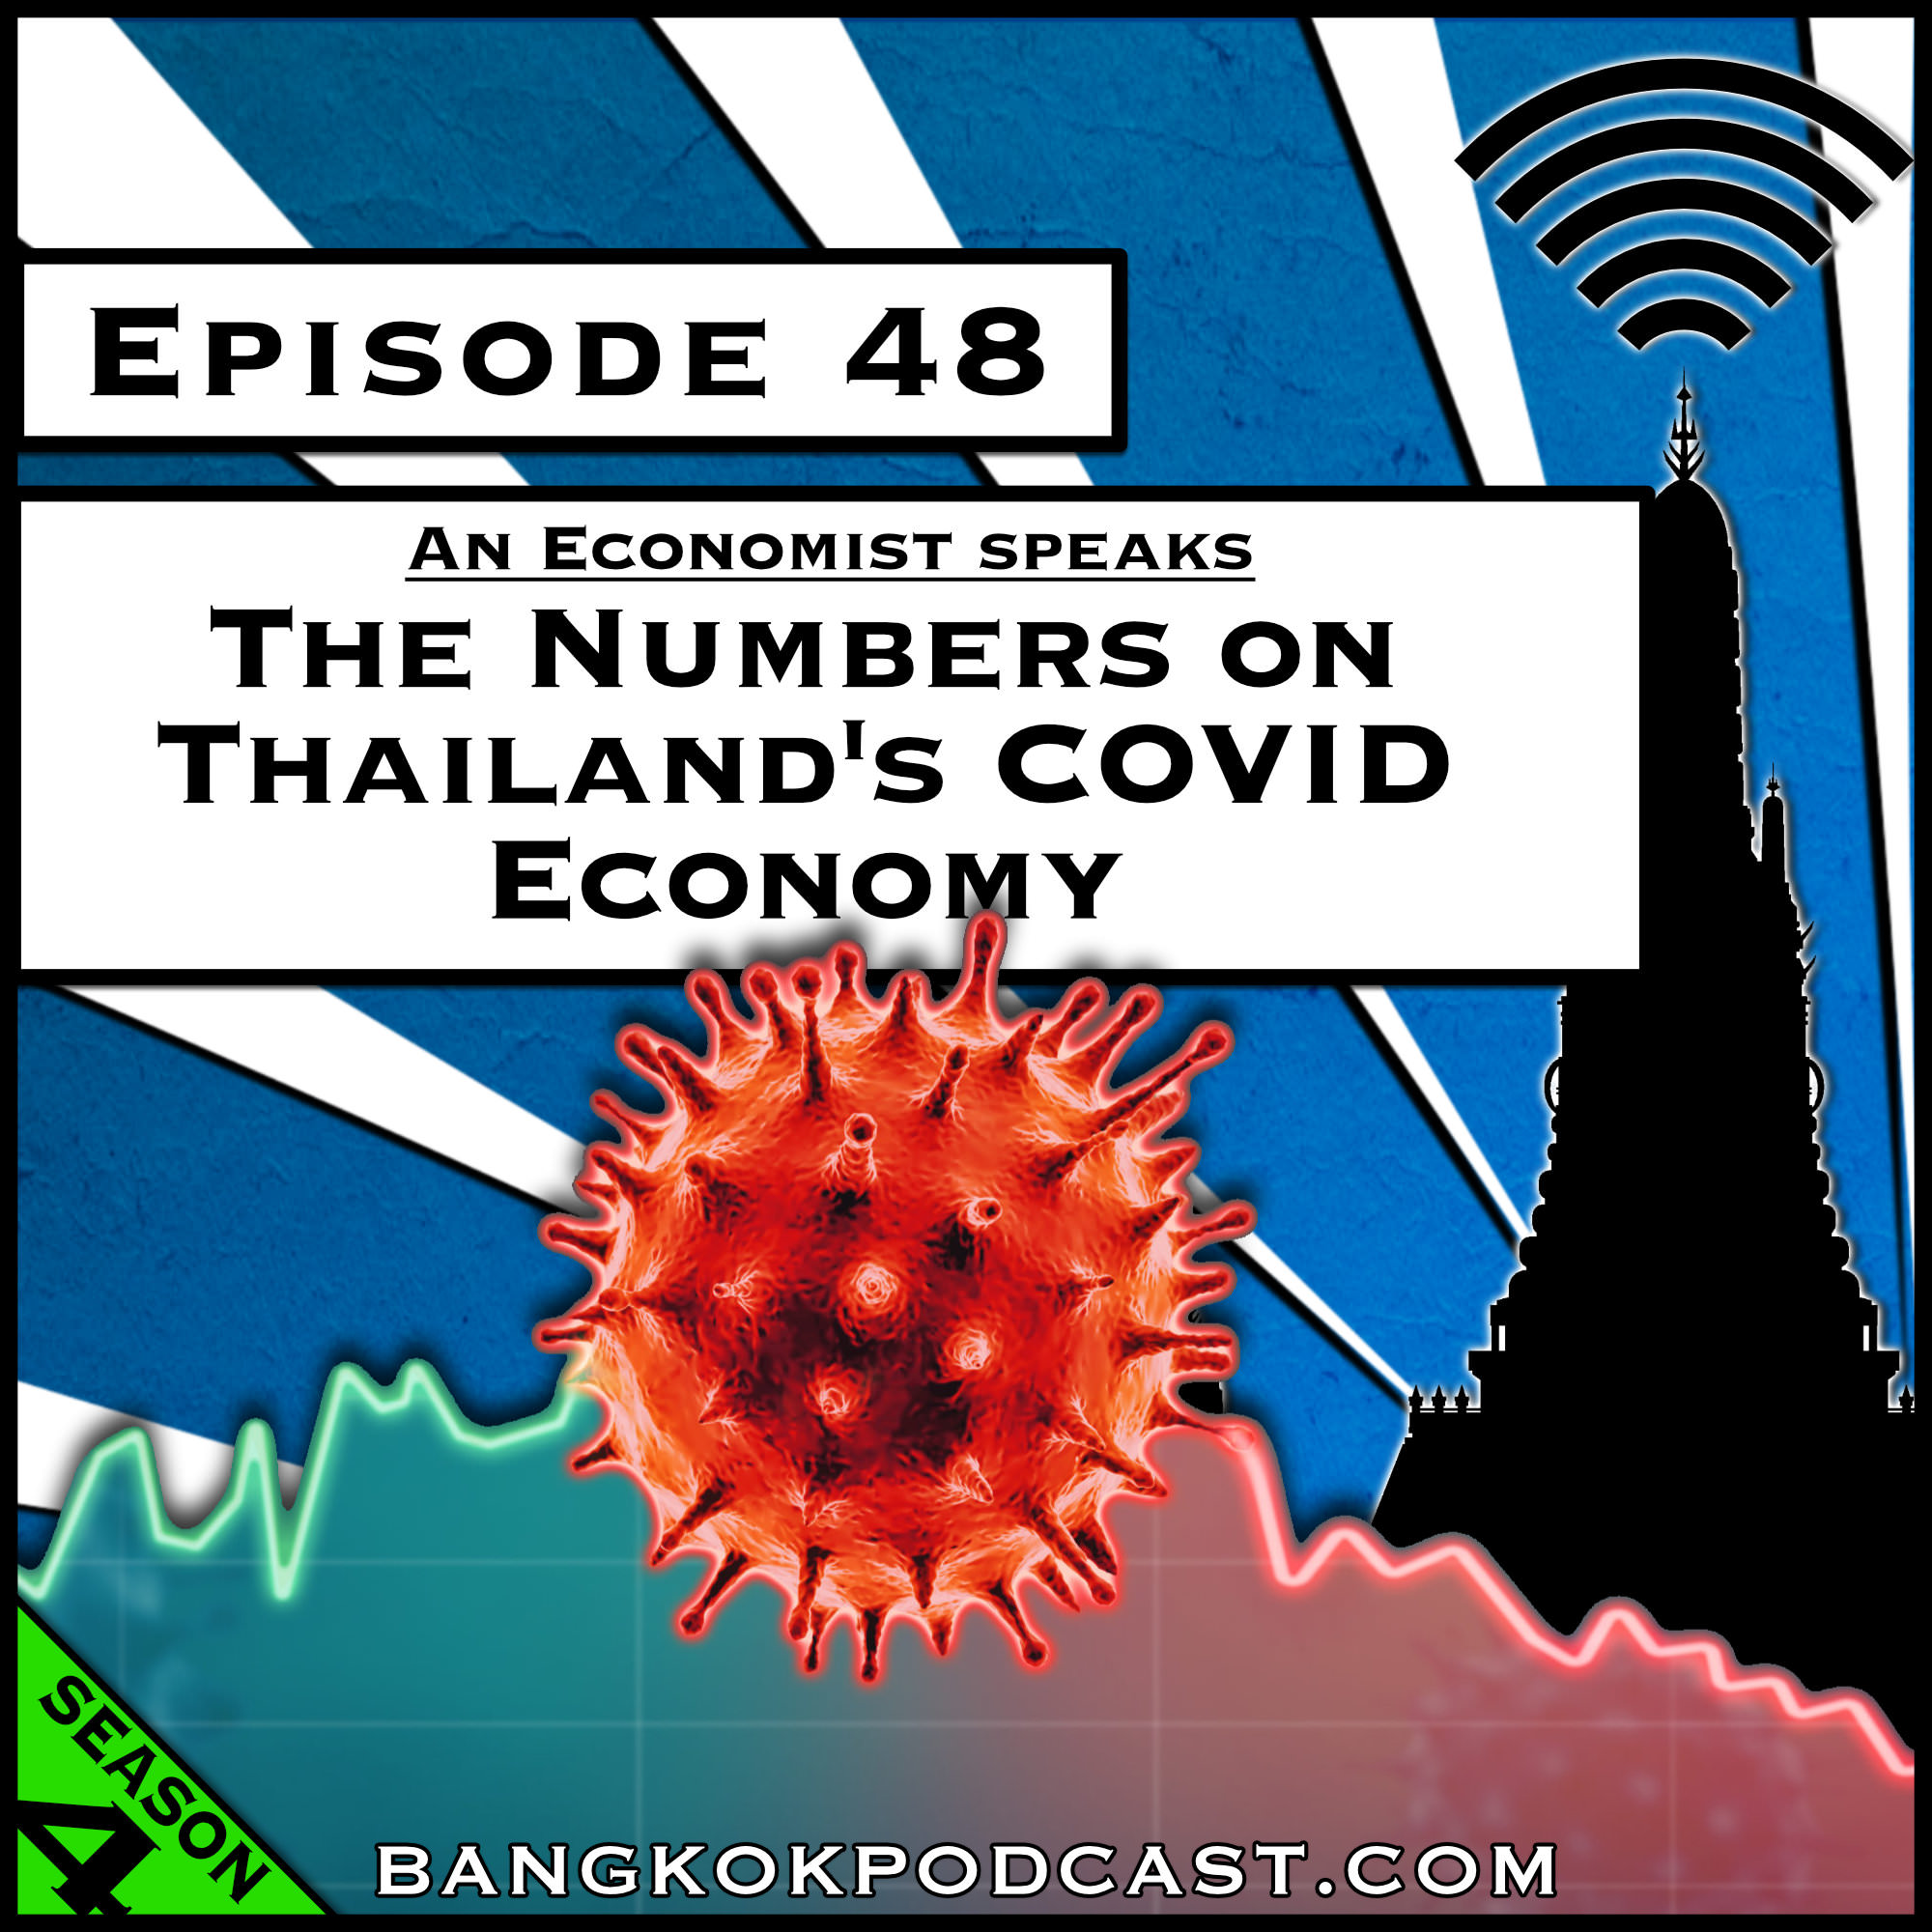 An Economist Speaks: The Numbers on Thailand's COVID Economy [Season 4, Episode 48]